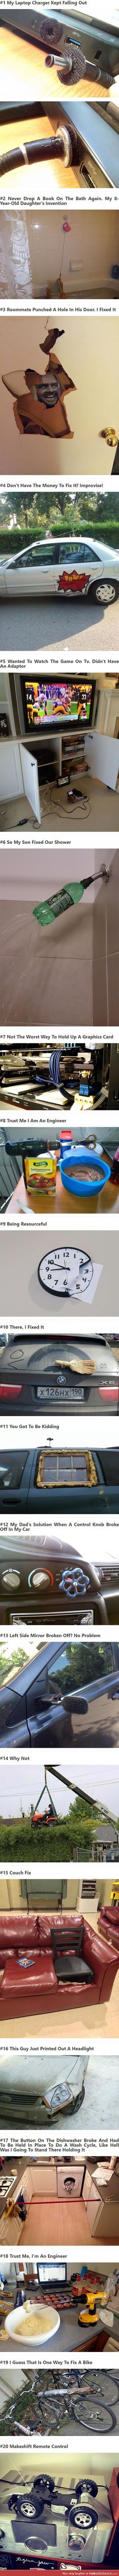 20 Times Engineers Showed Us How to Fix Everyday Things